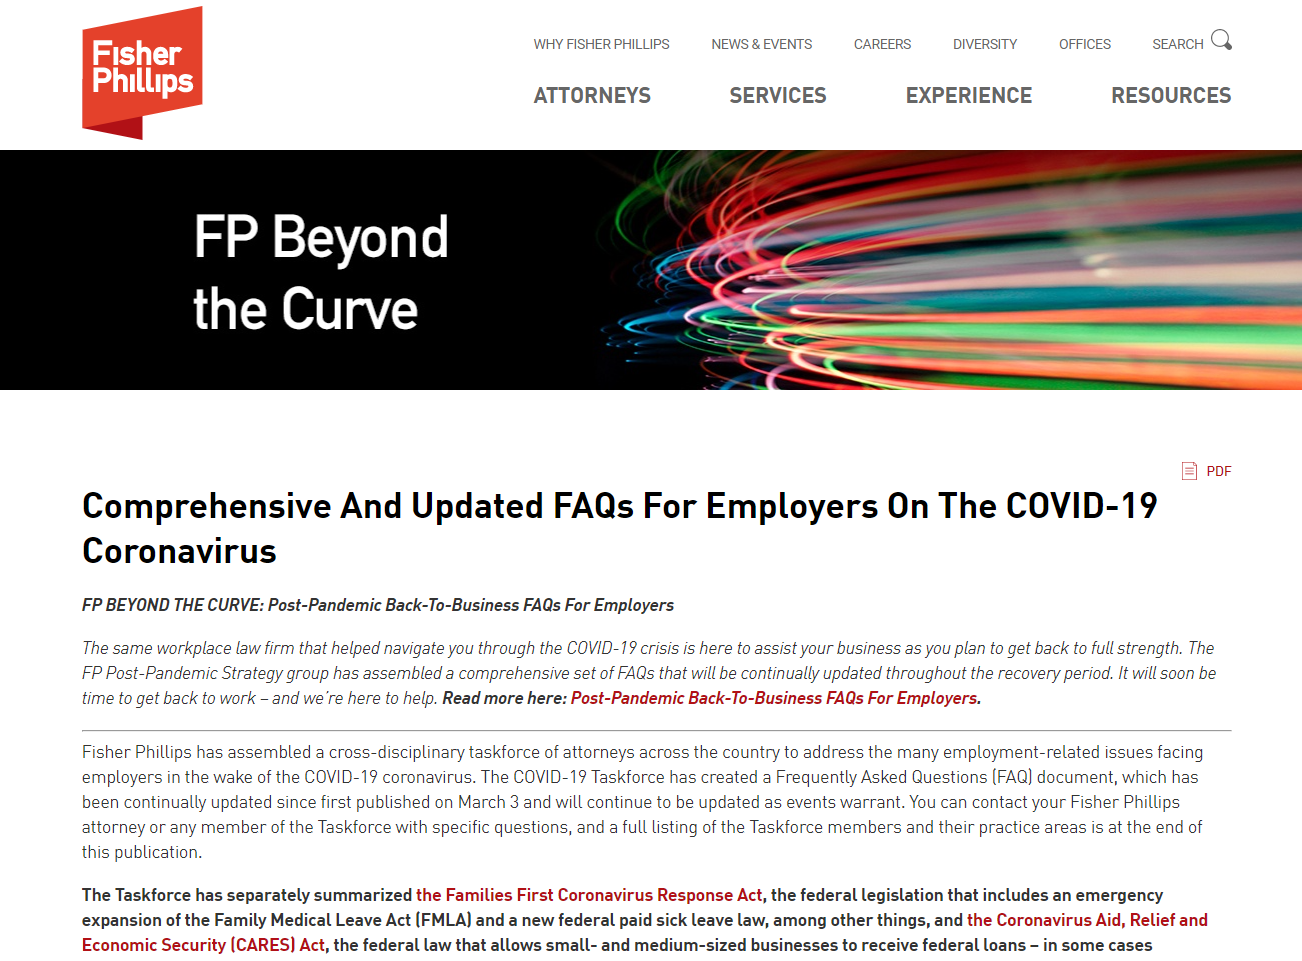 Comprehensive FAQs for Employers